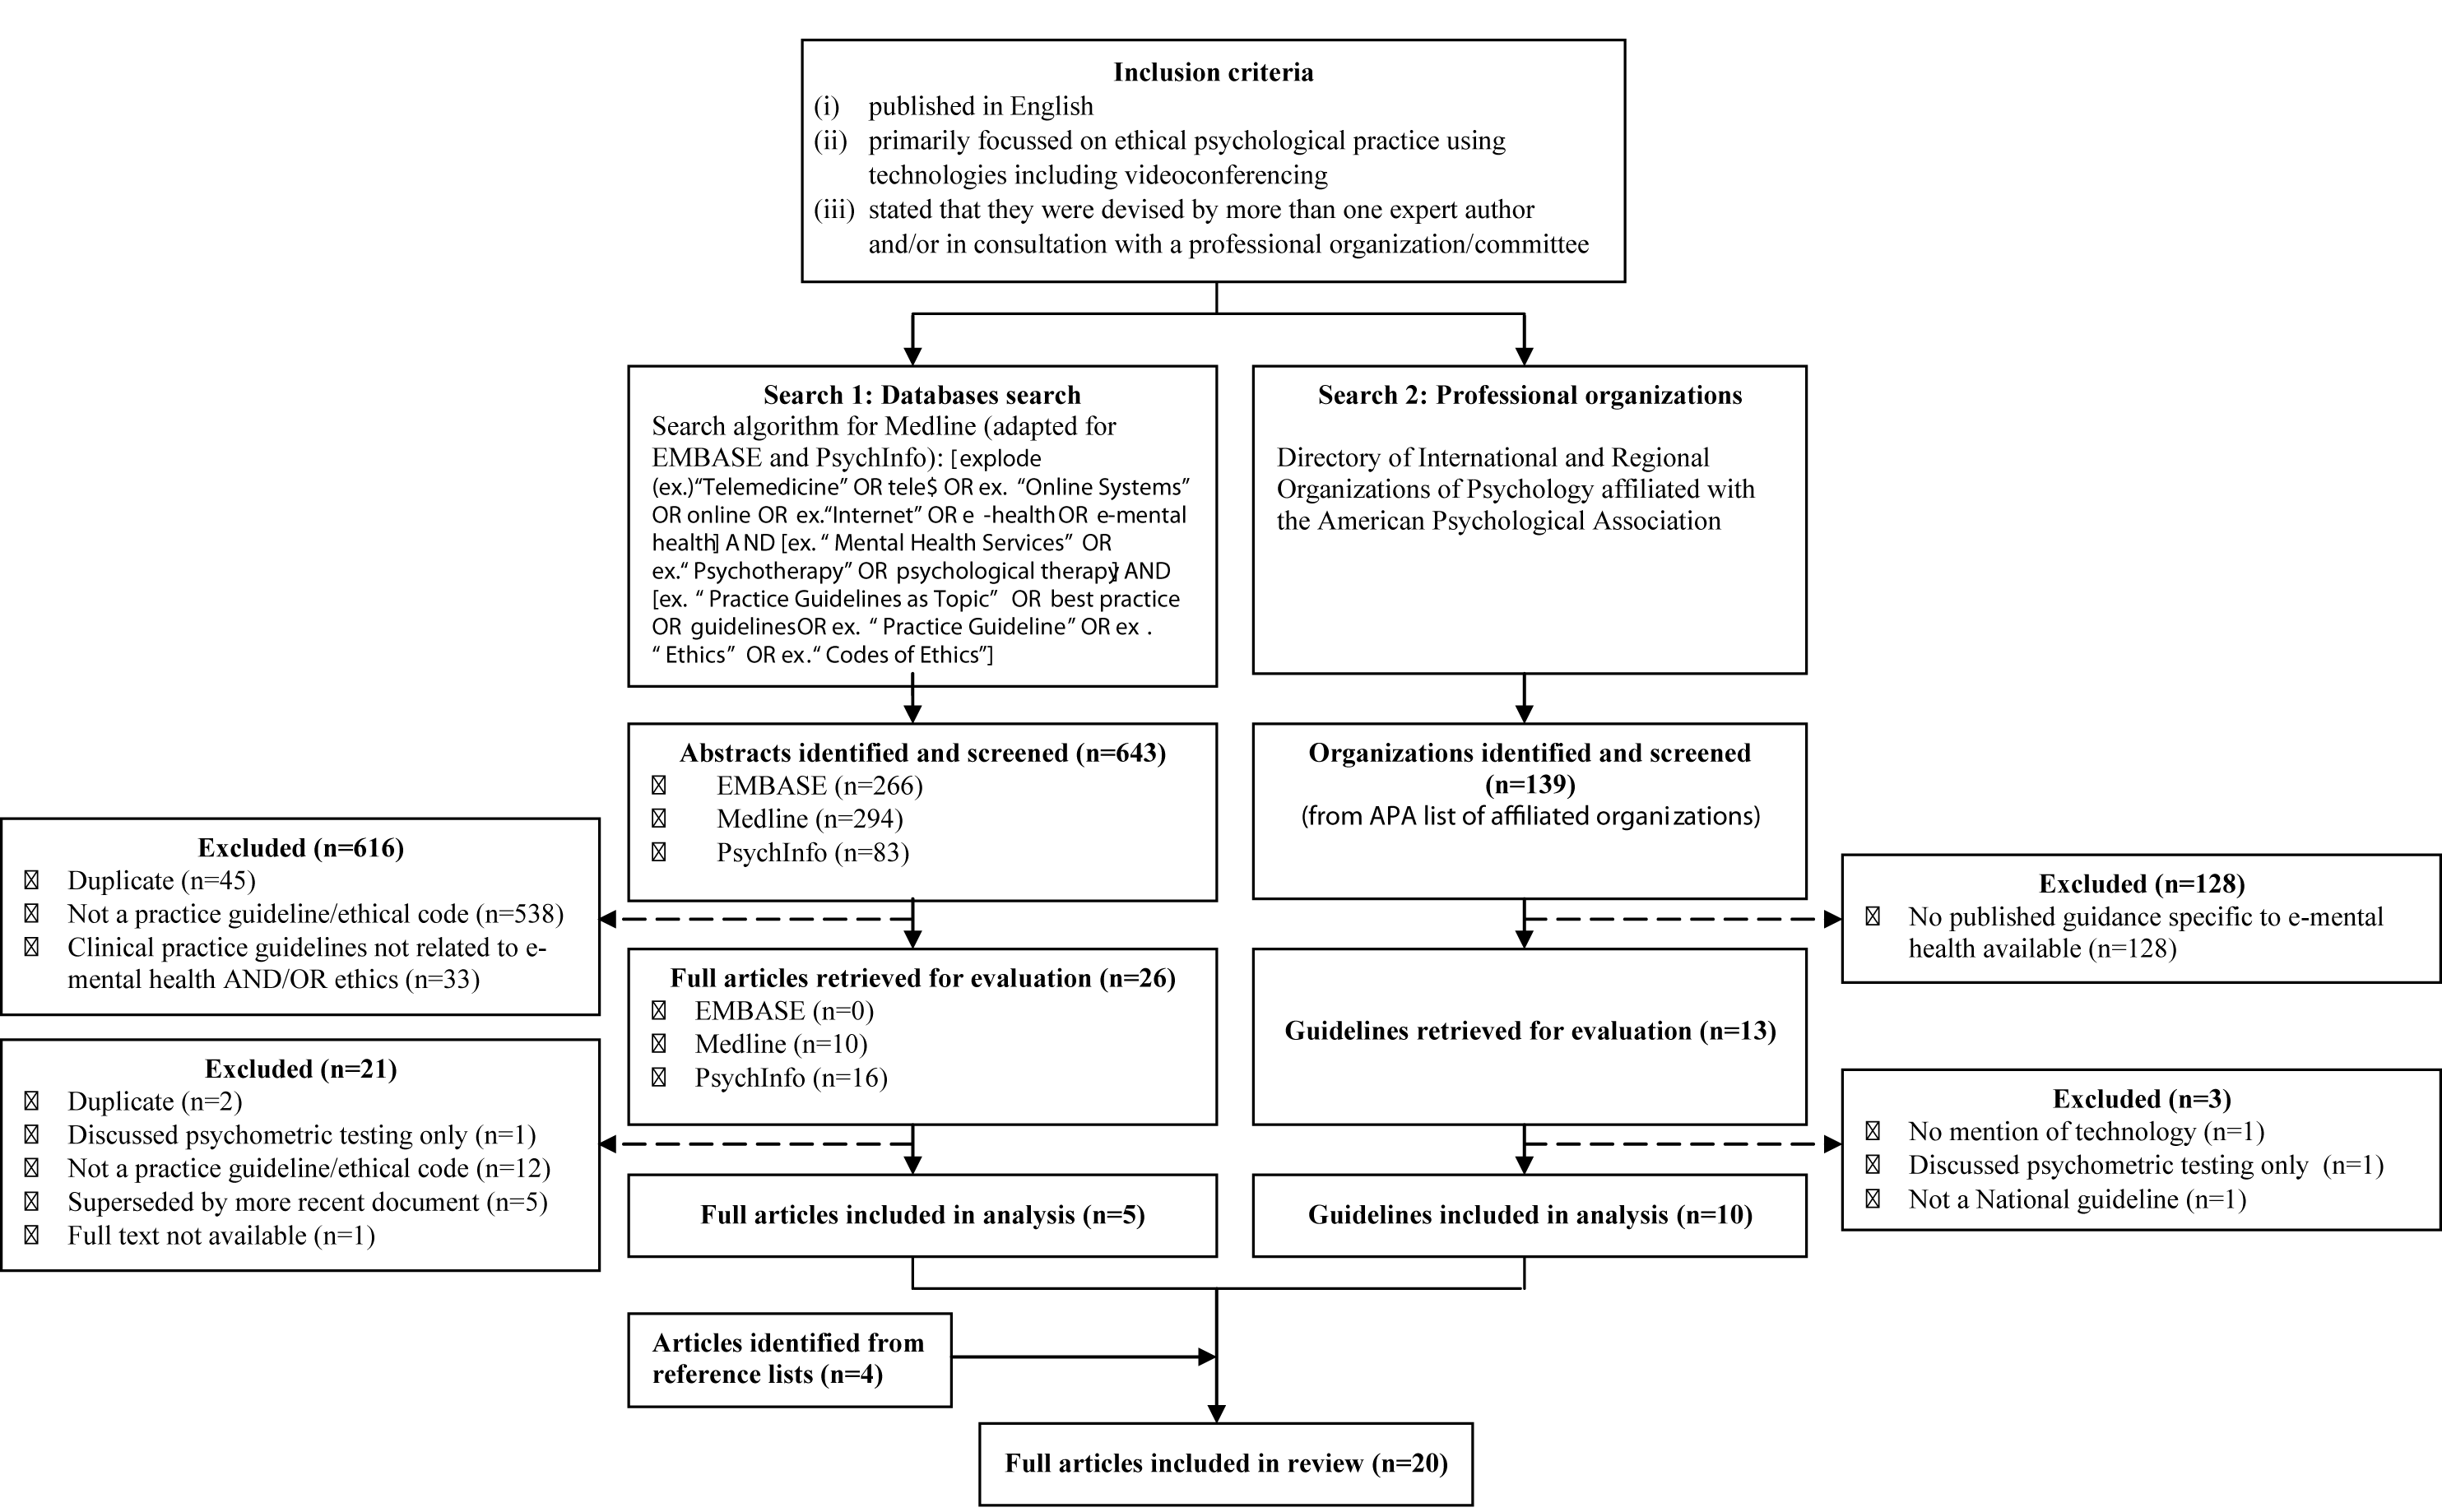 jmh consensus among international ethical guidelines for the preferred reporting items for systematic reviews and meta analyses prisma flowchart of the search and selection process of guidelines included in the